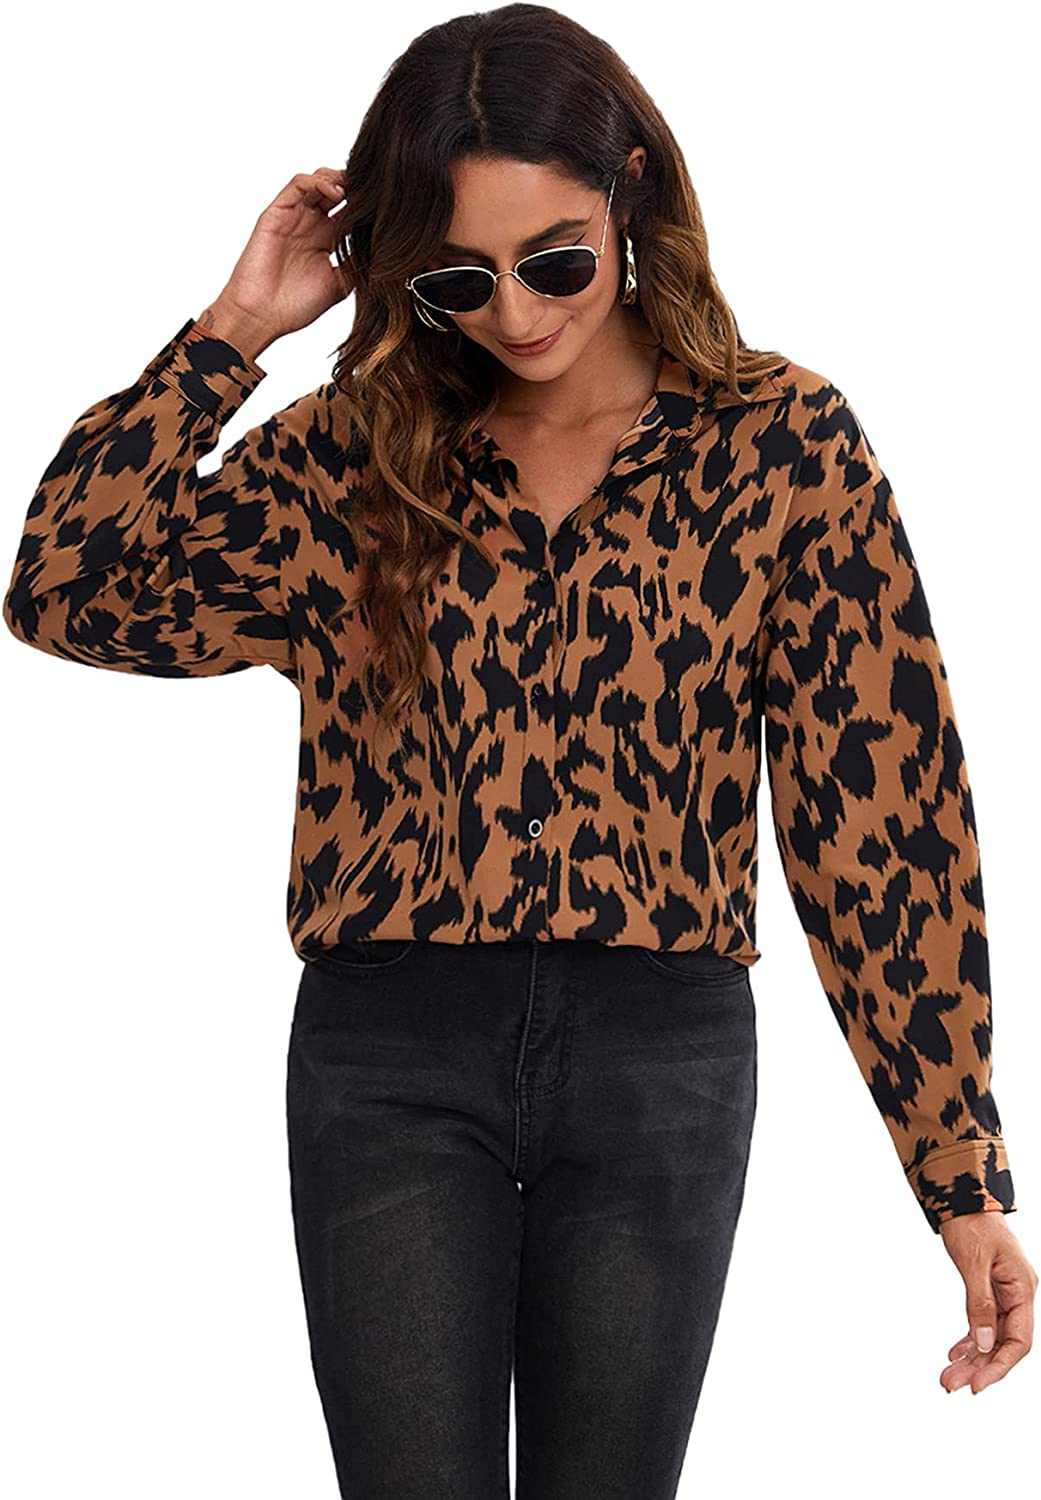 Romwe Women's Allover Print Long Sleeve Collar Button Down Work Shirts Blouses Tops